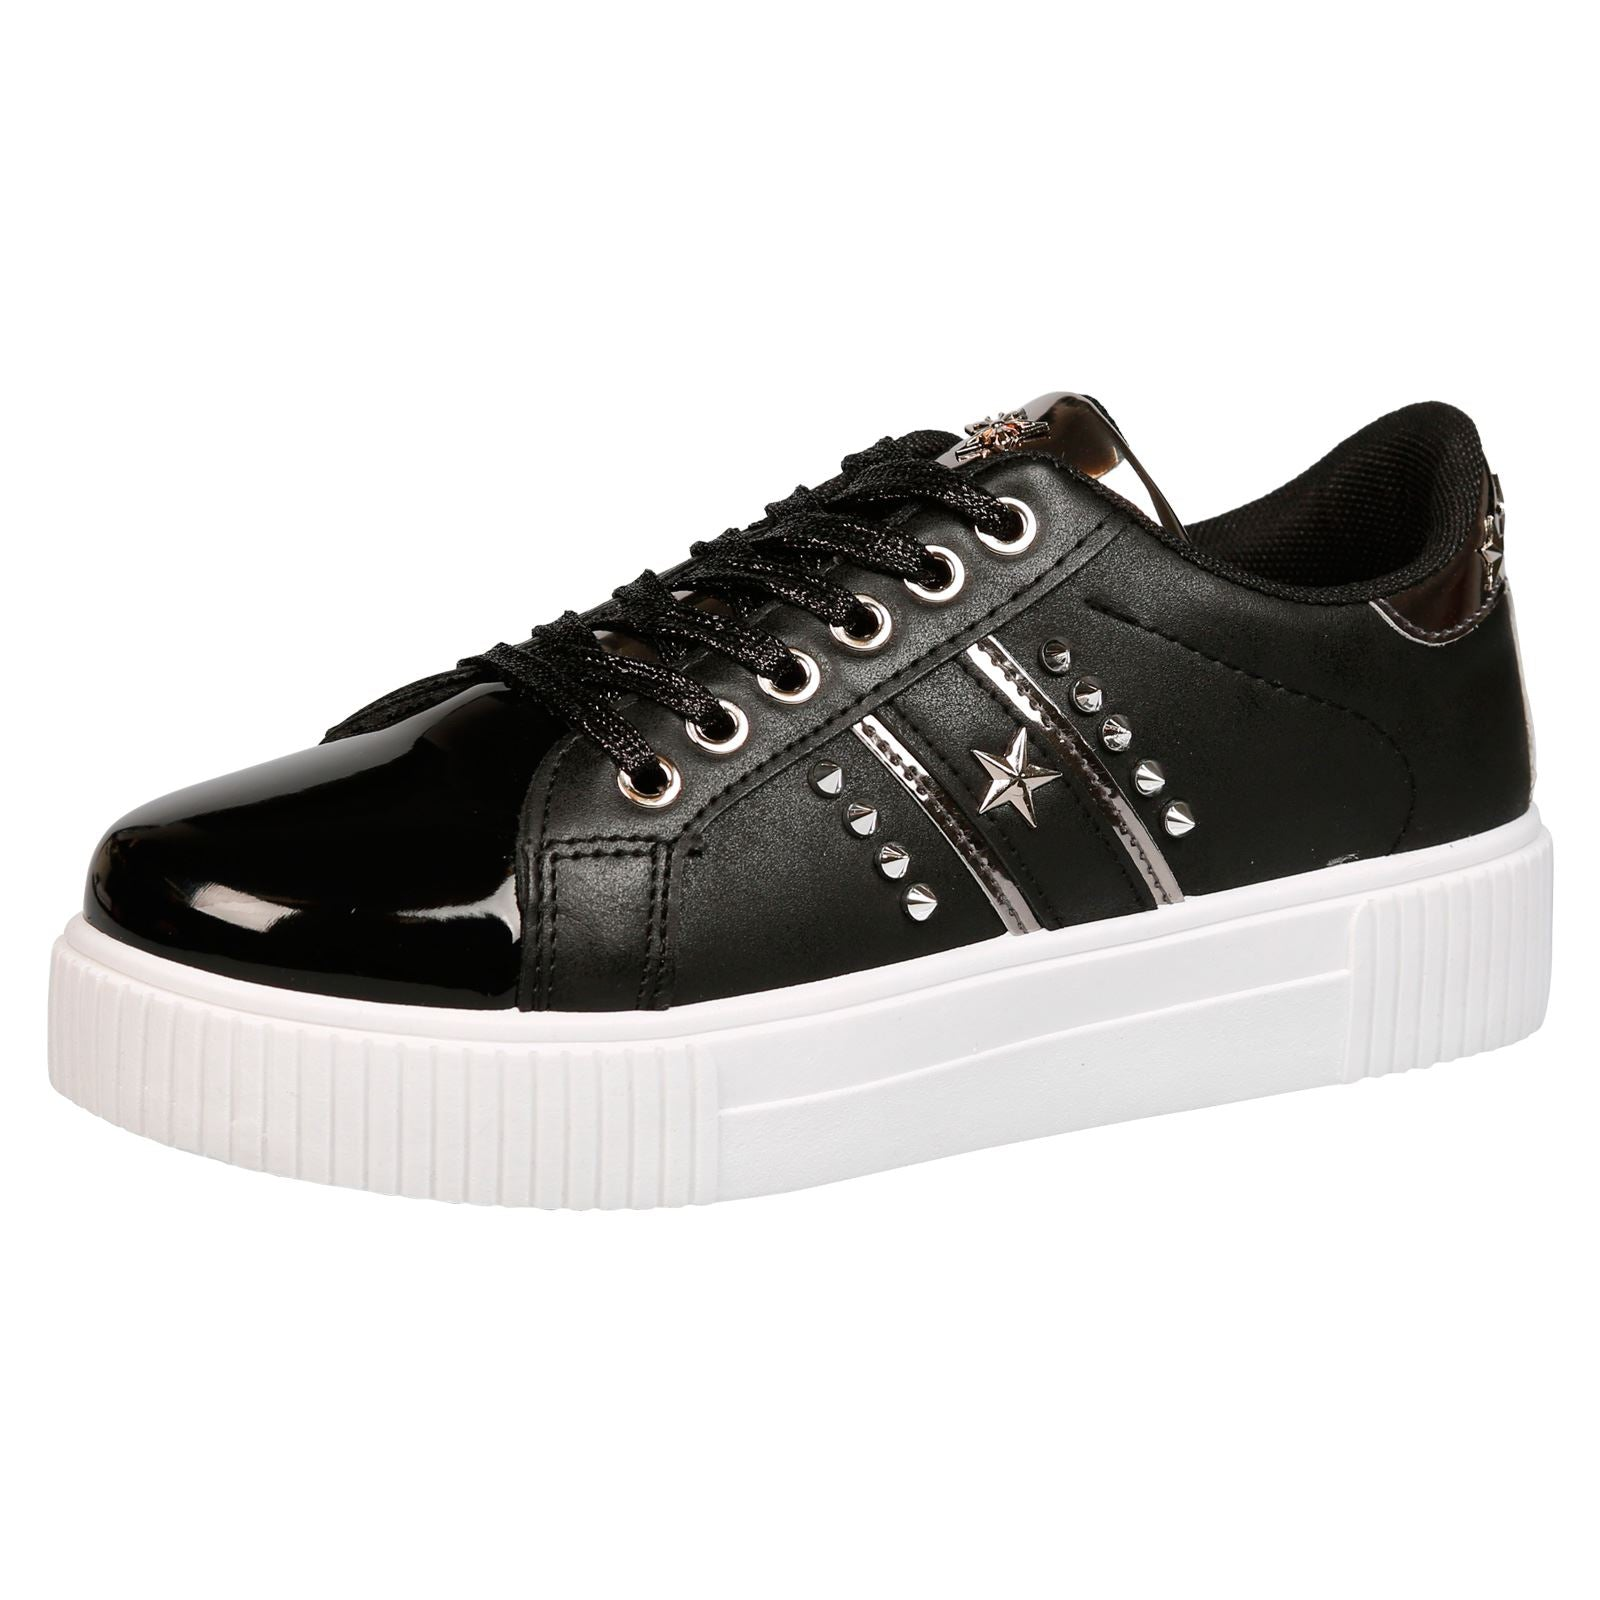 Imani Star Studded Trainers in Black Faux Leather & Patent